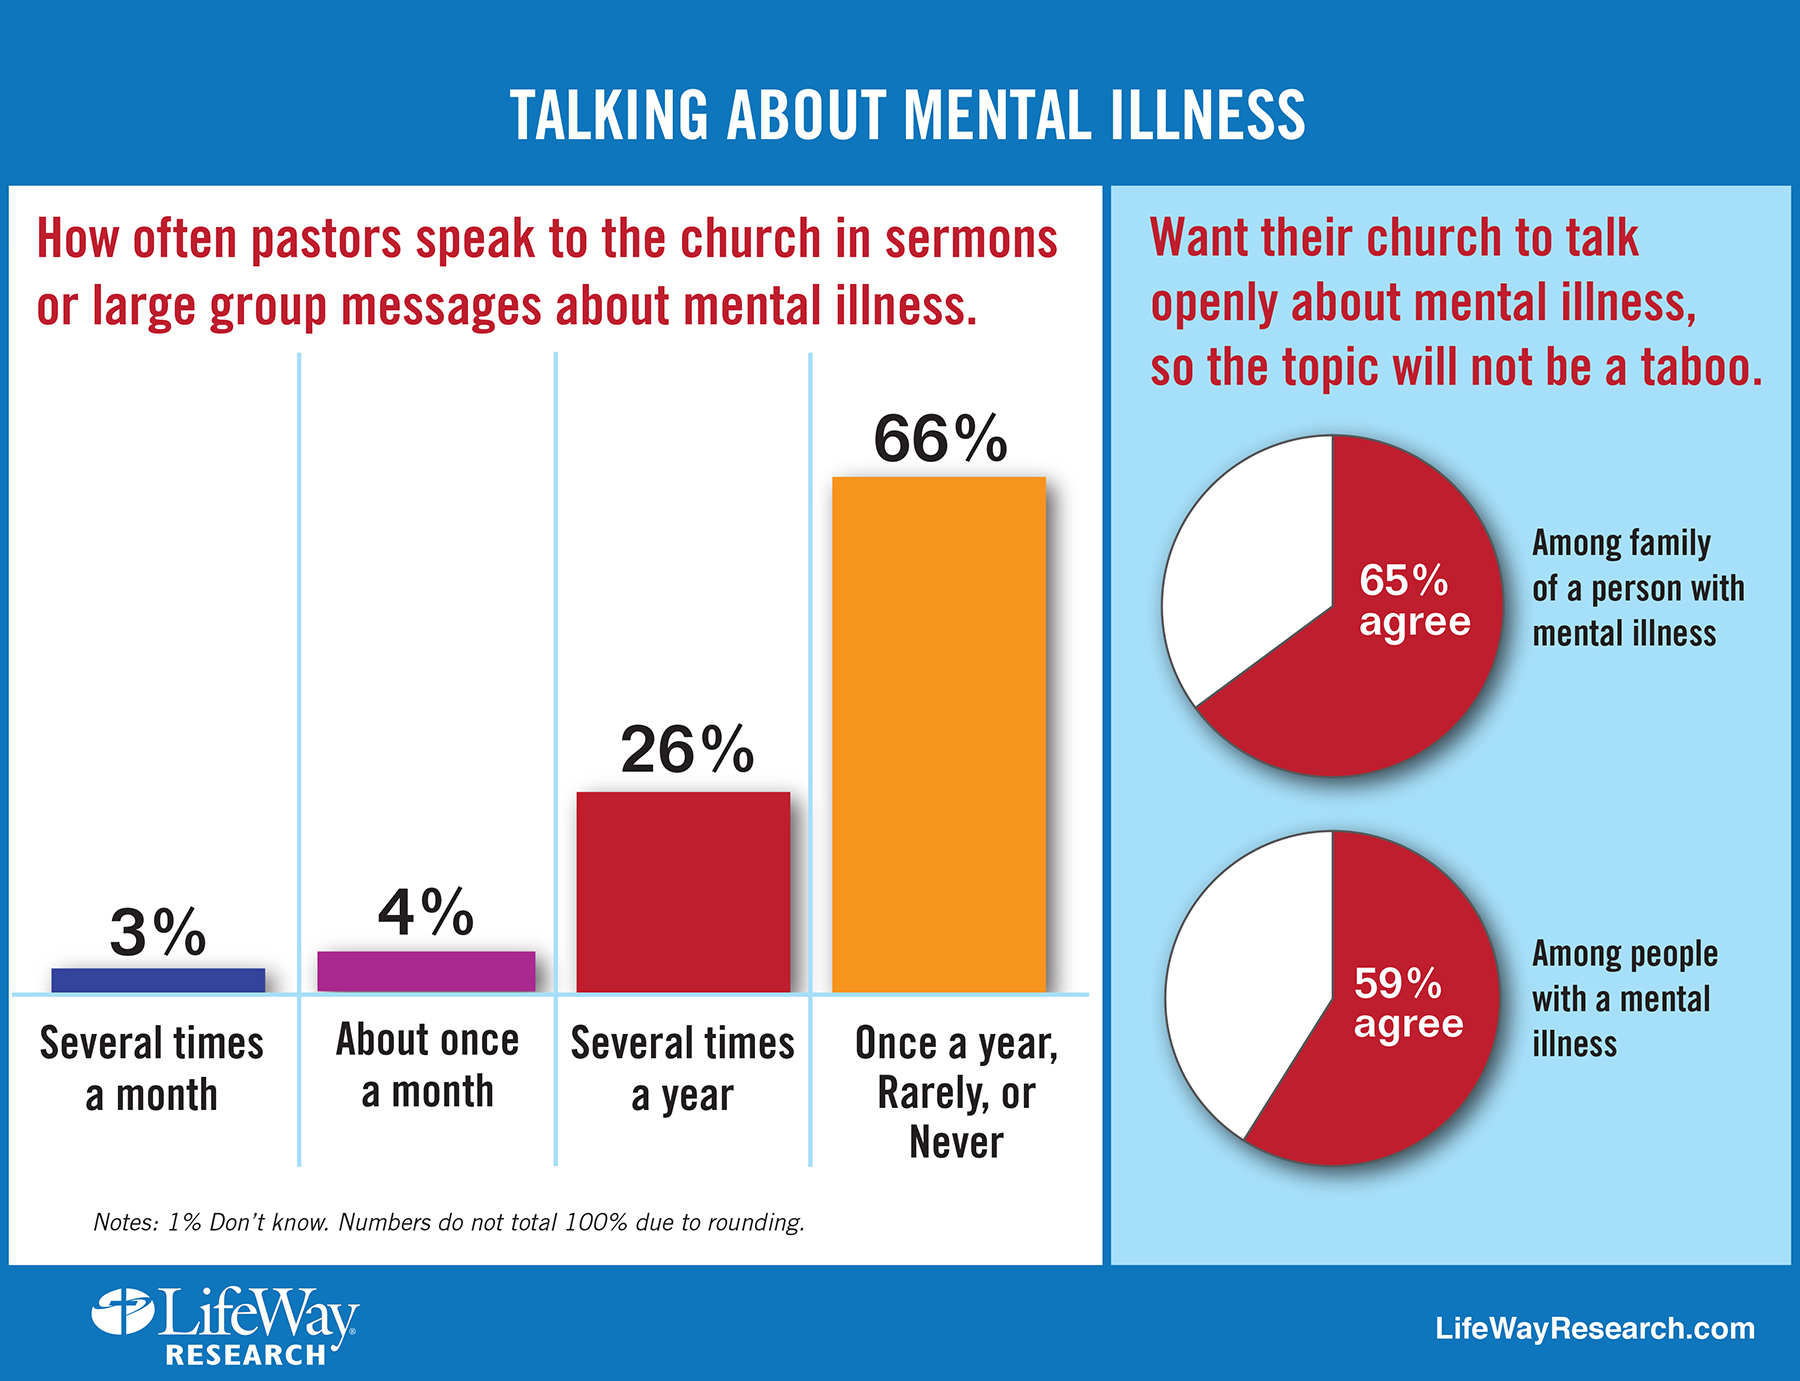 new research mental illness remains taboo topic for many pastors